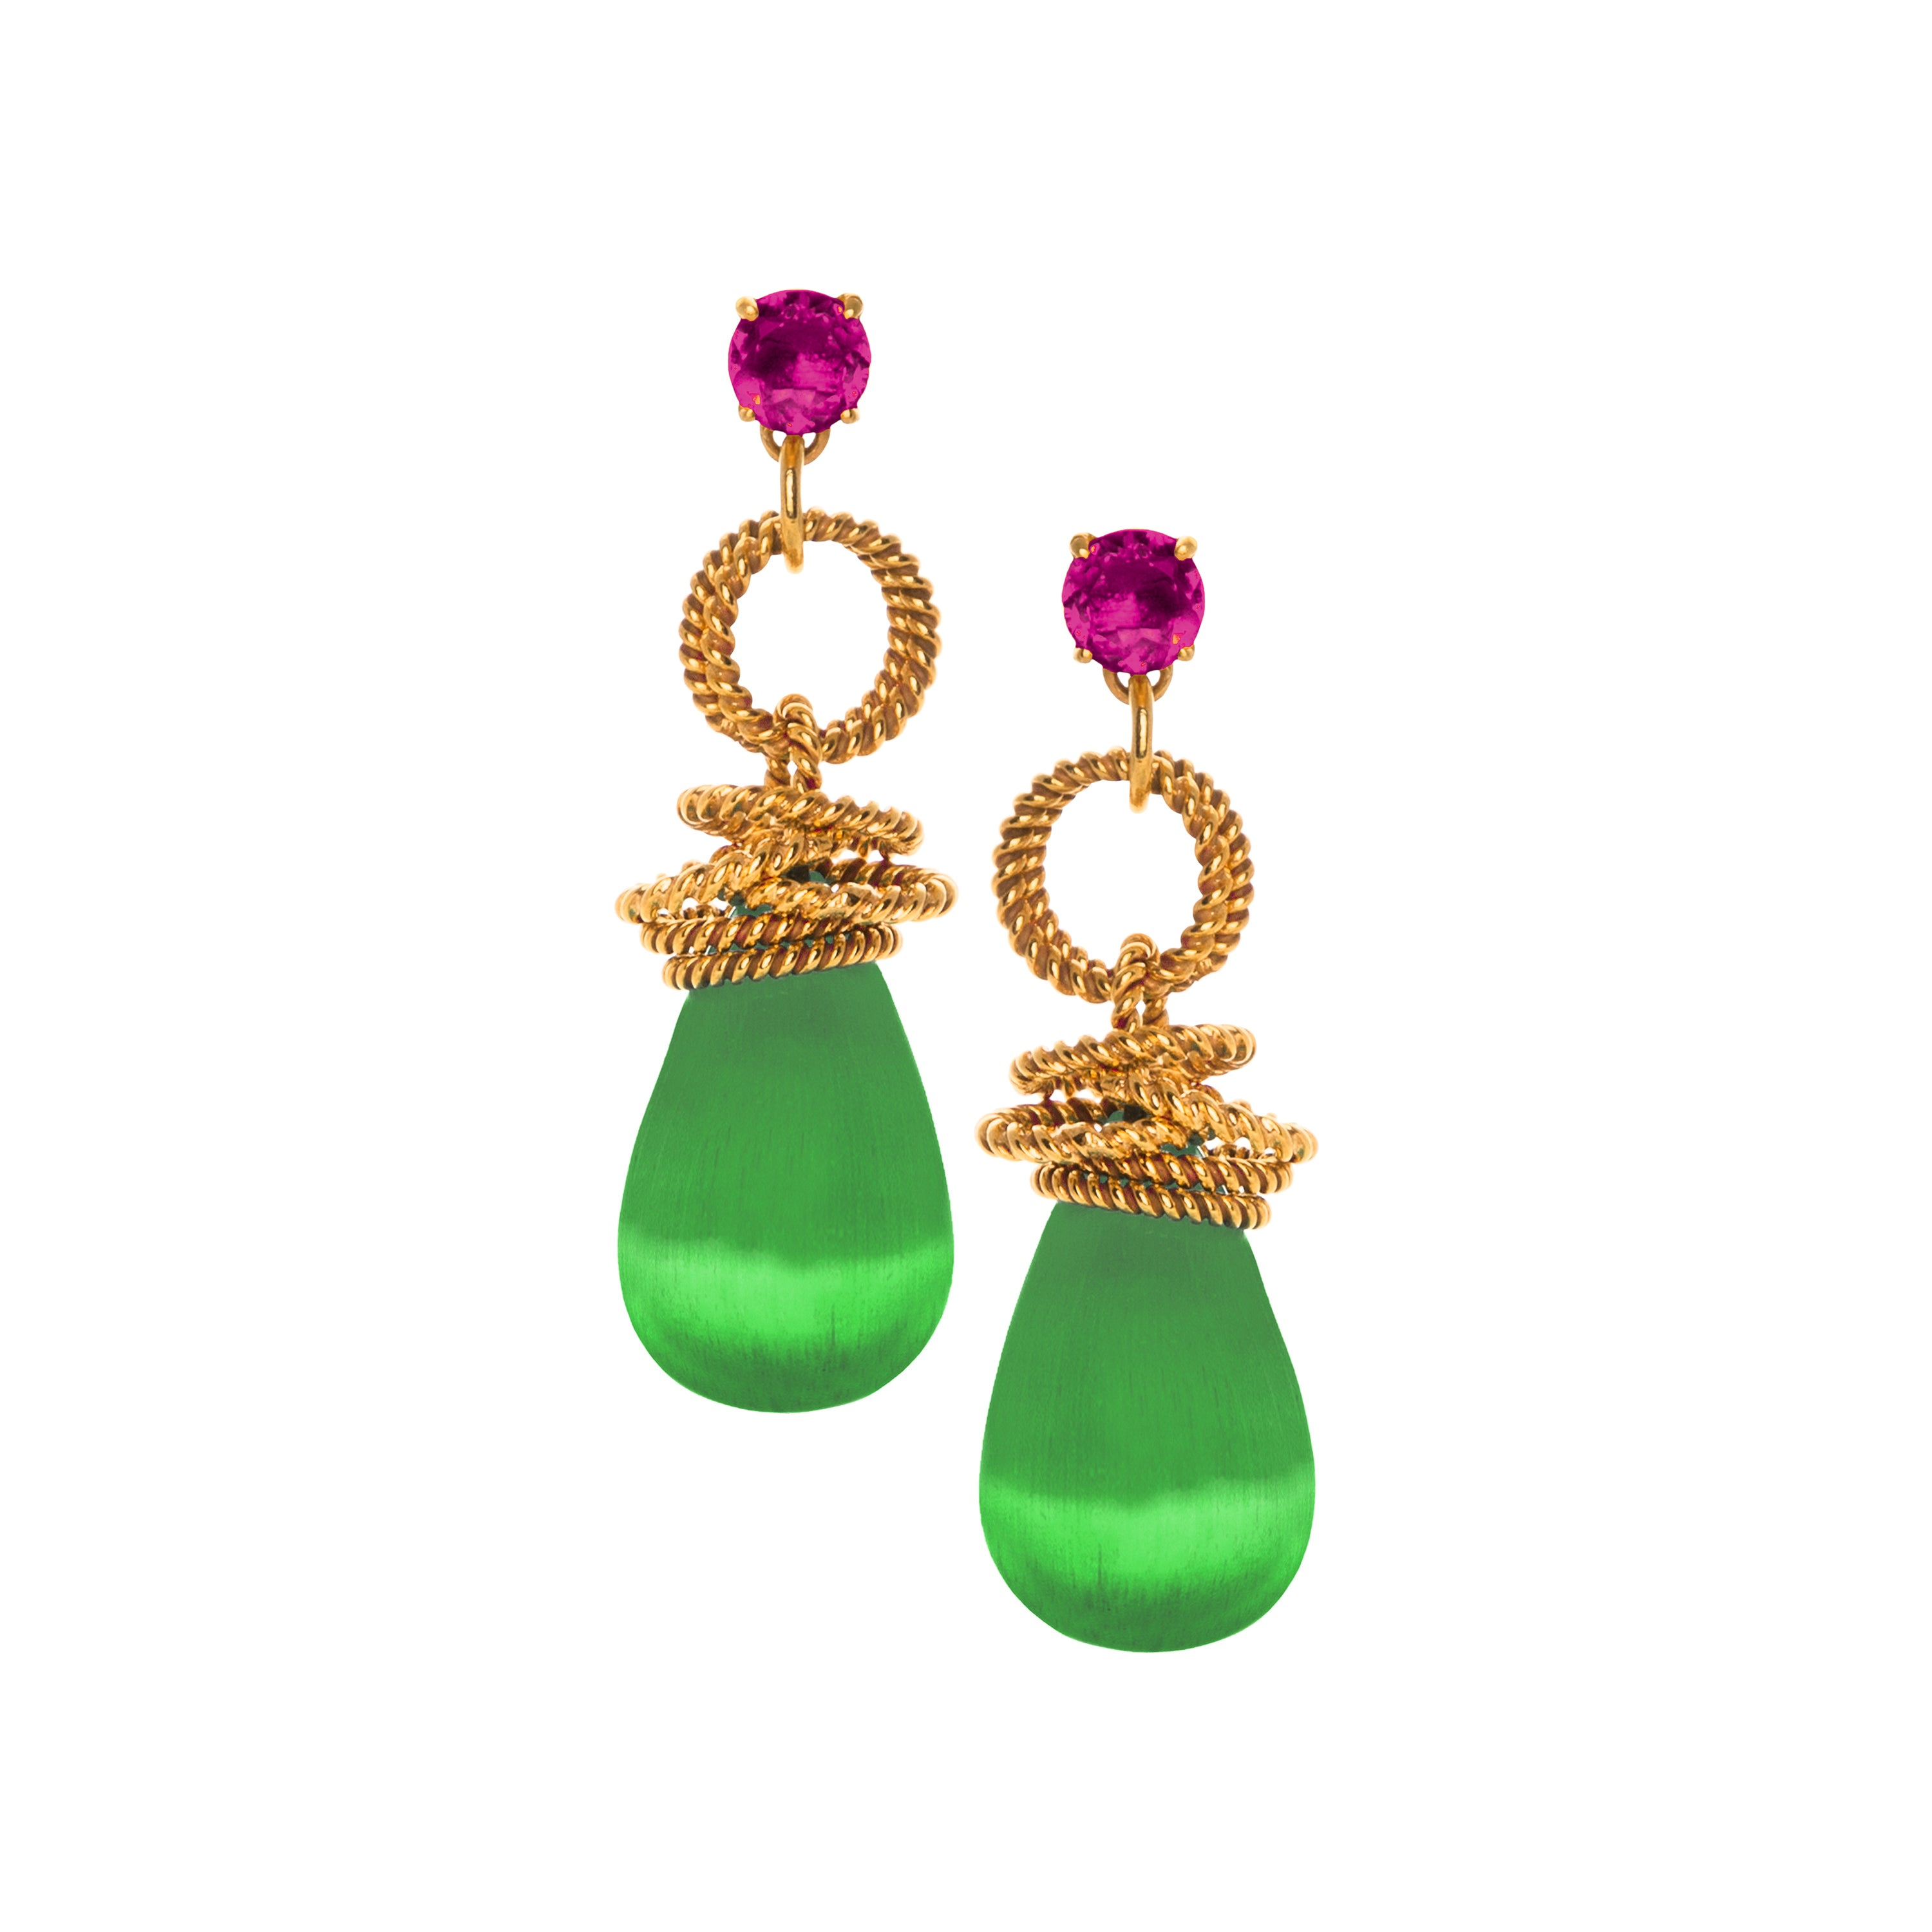 THE CLARISSA (Hot Pink & Green)